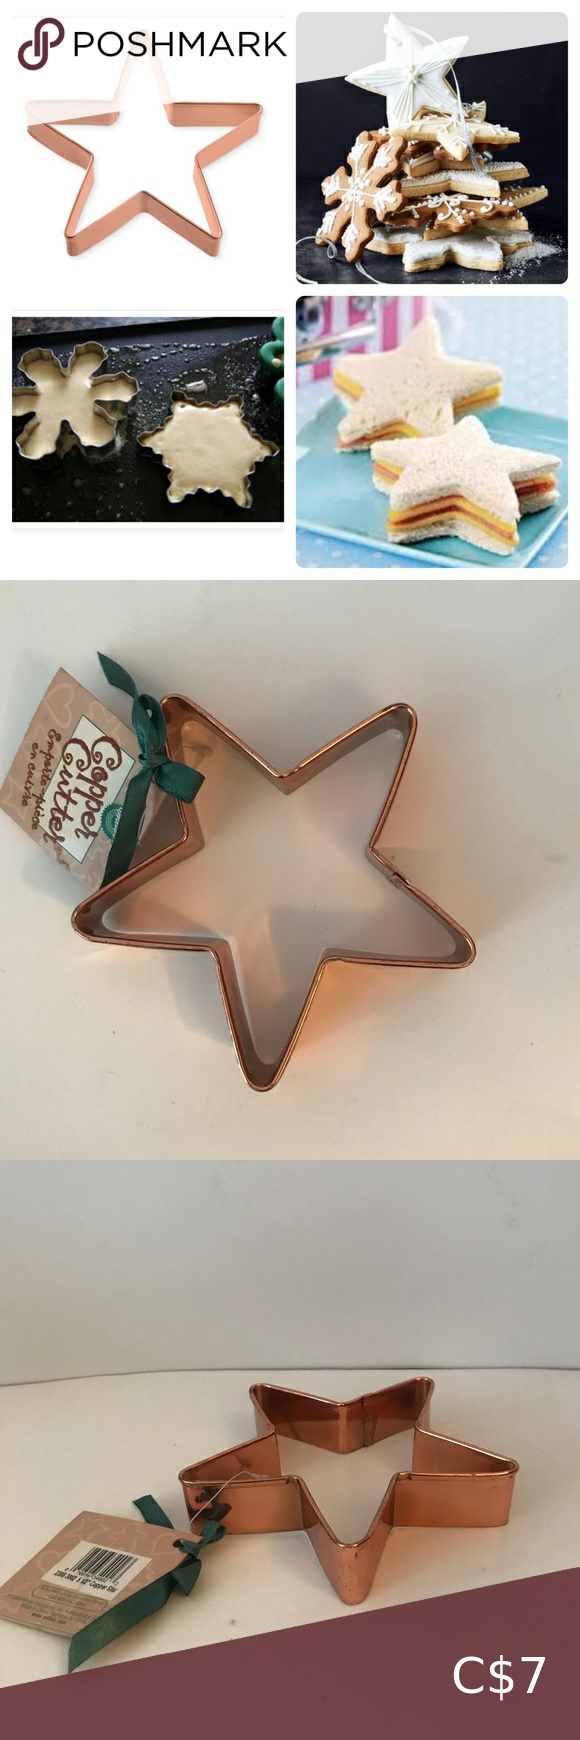 XL Copper Cookie Cutter/Sandwich & Pancake Maker